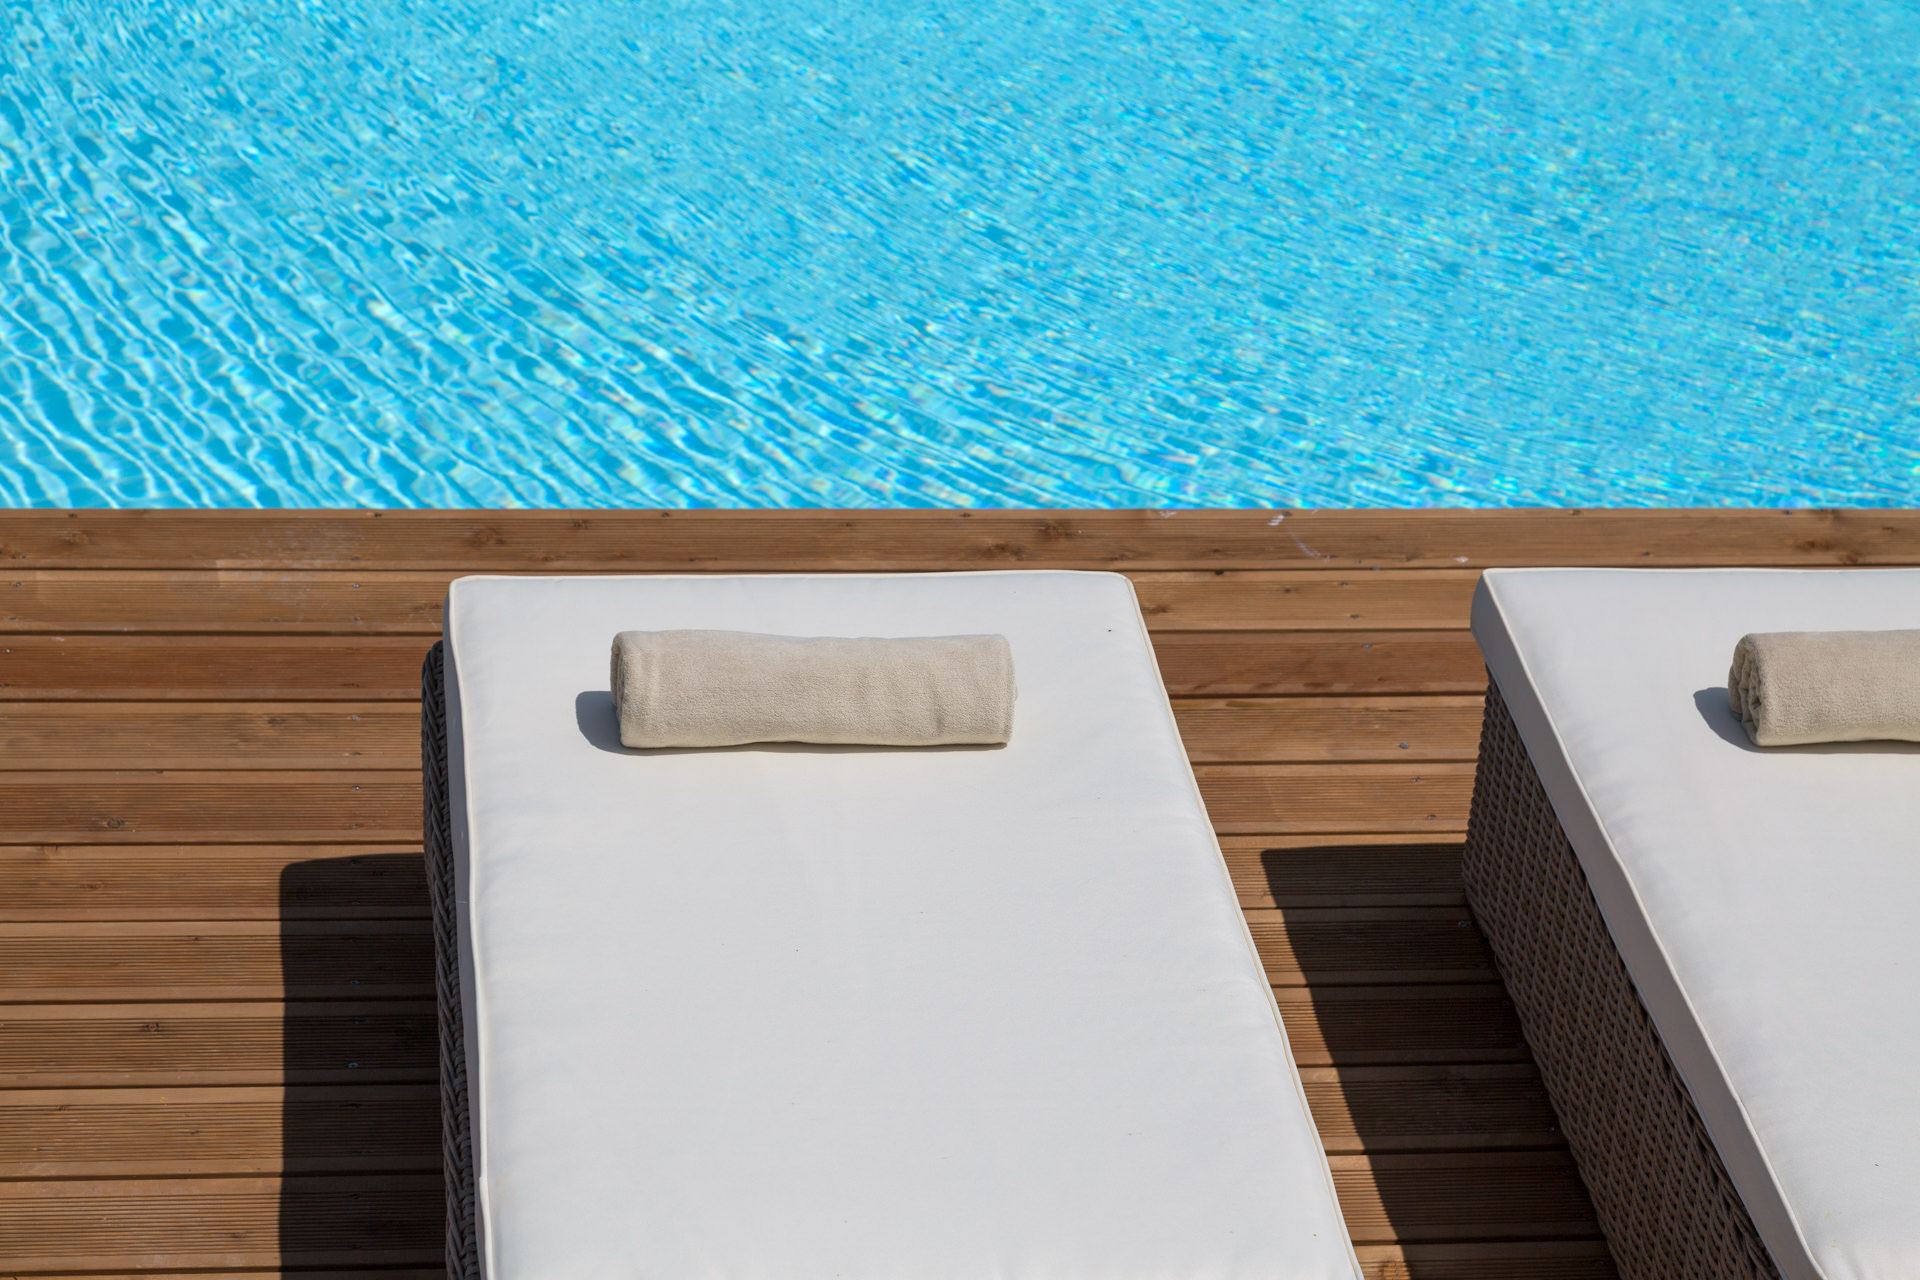 Private pool and luxury sunbeds